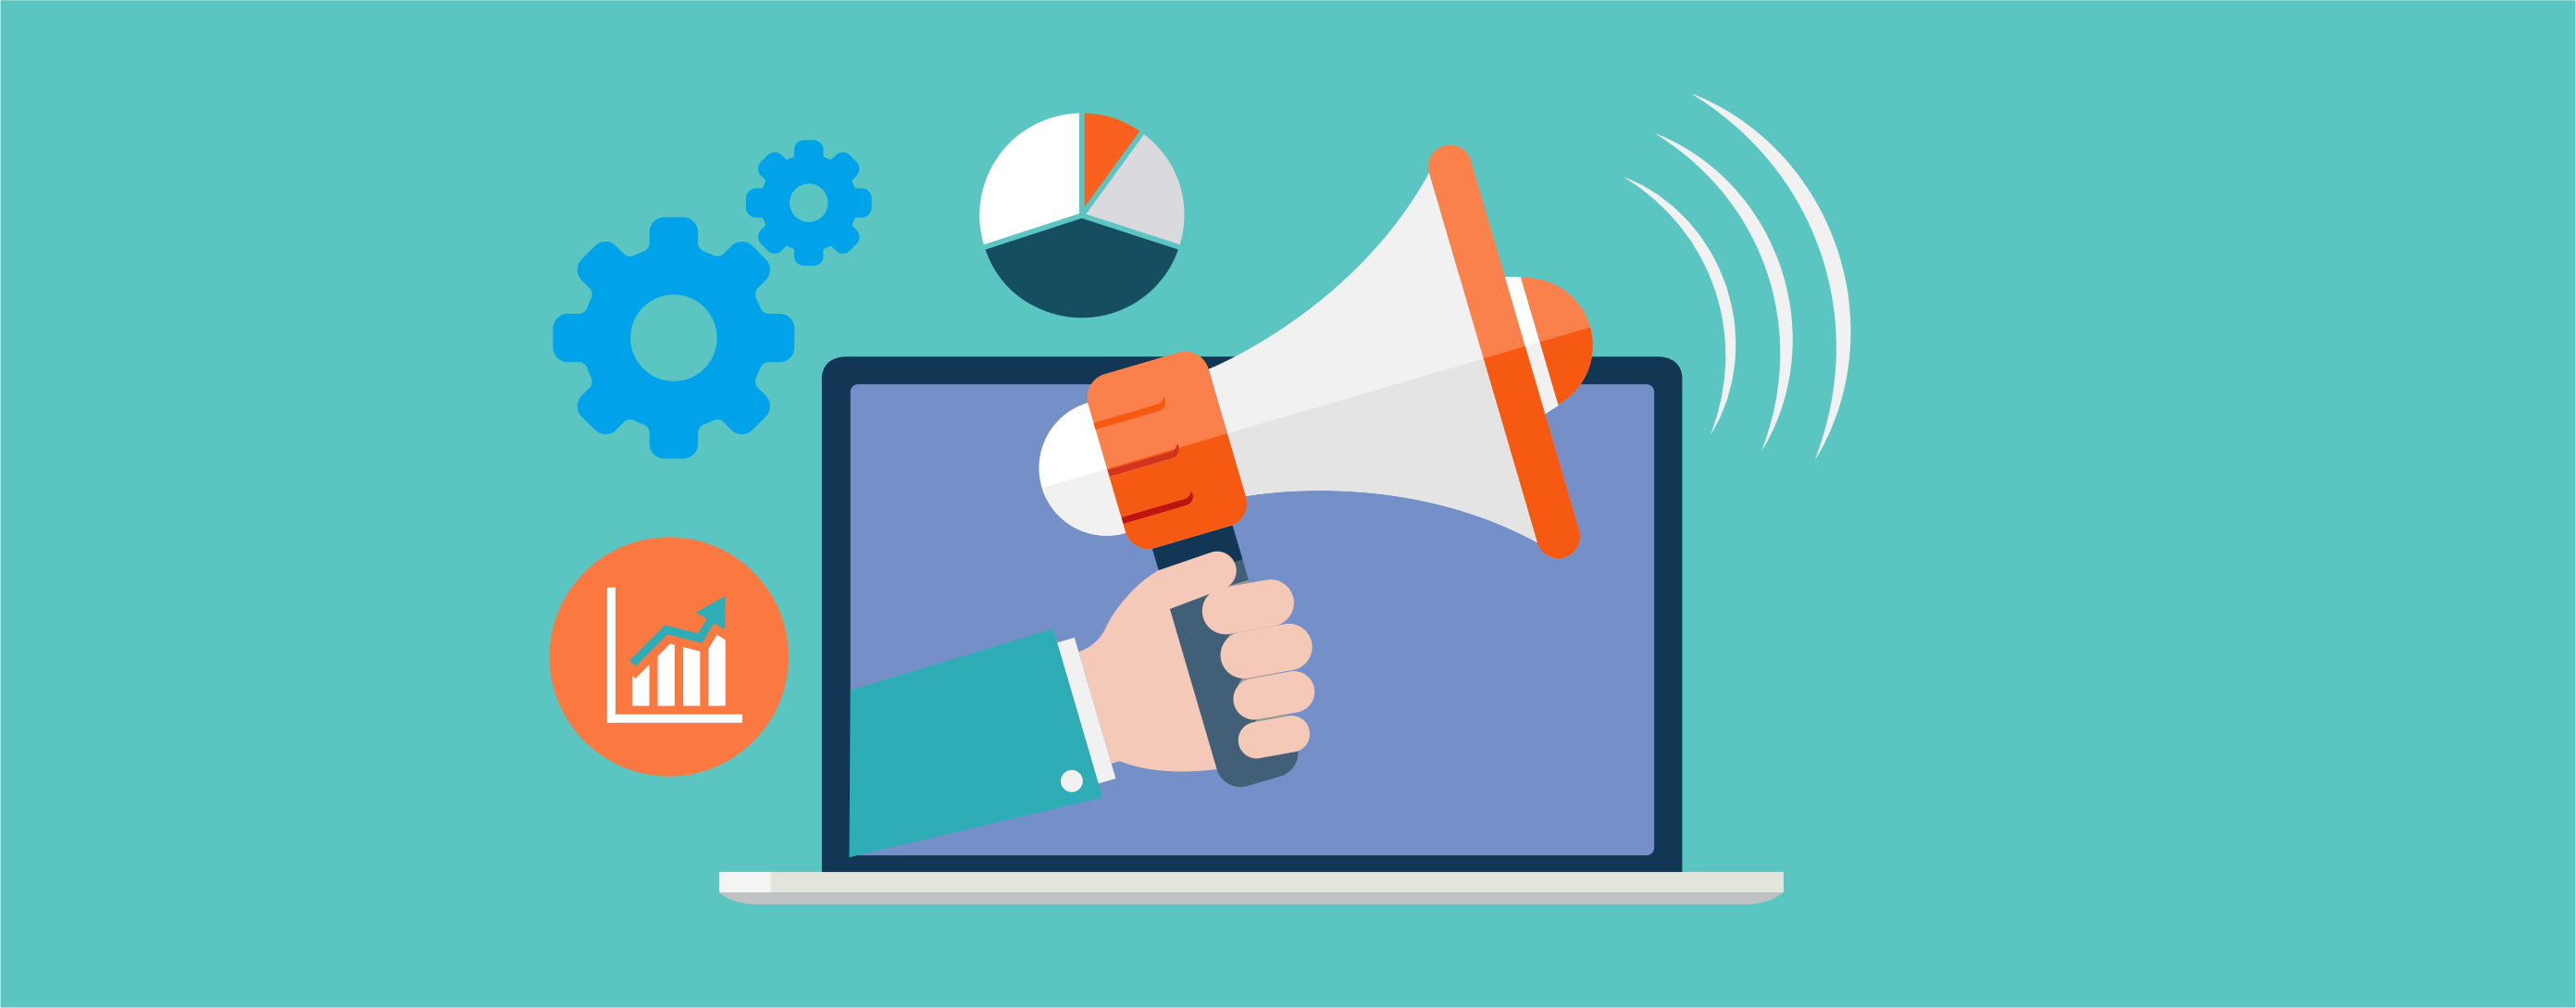 3 cost effective platforms that will increase brand awareness